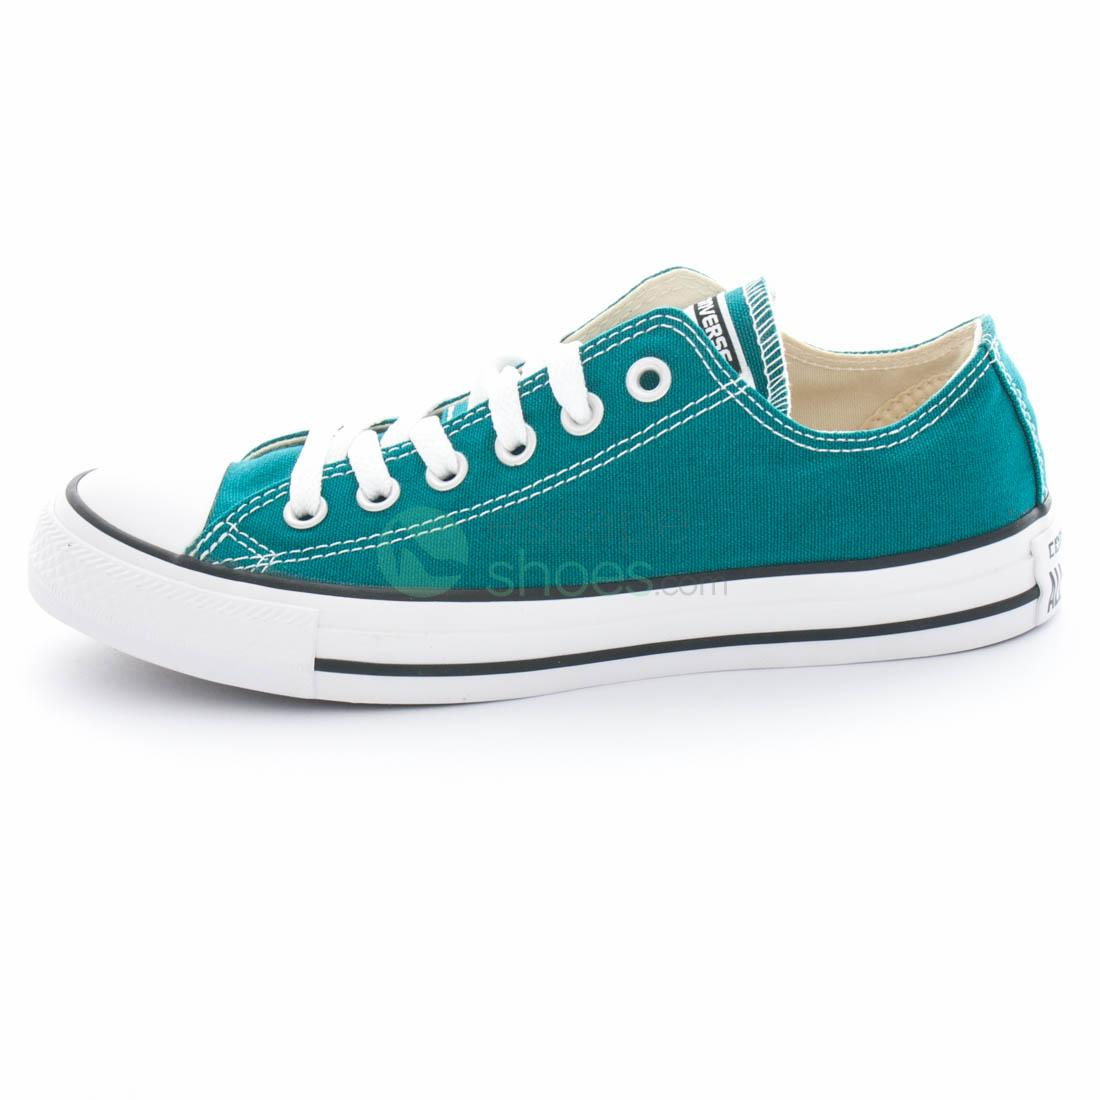 Sneakers CONVERSE Chuck Taylor All Star 151181C Rebel Teal White Black